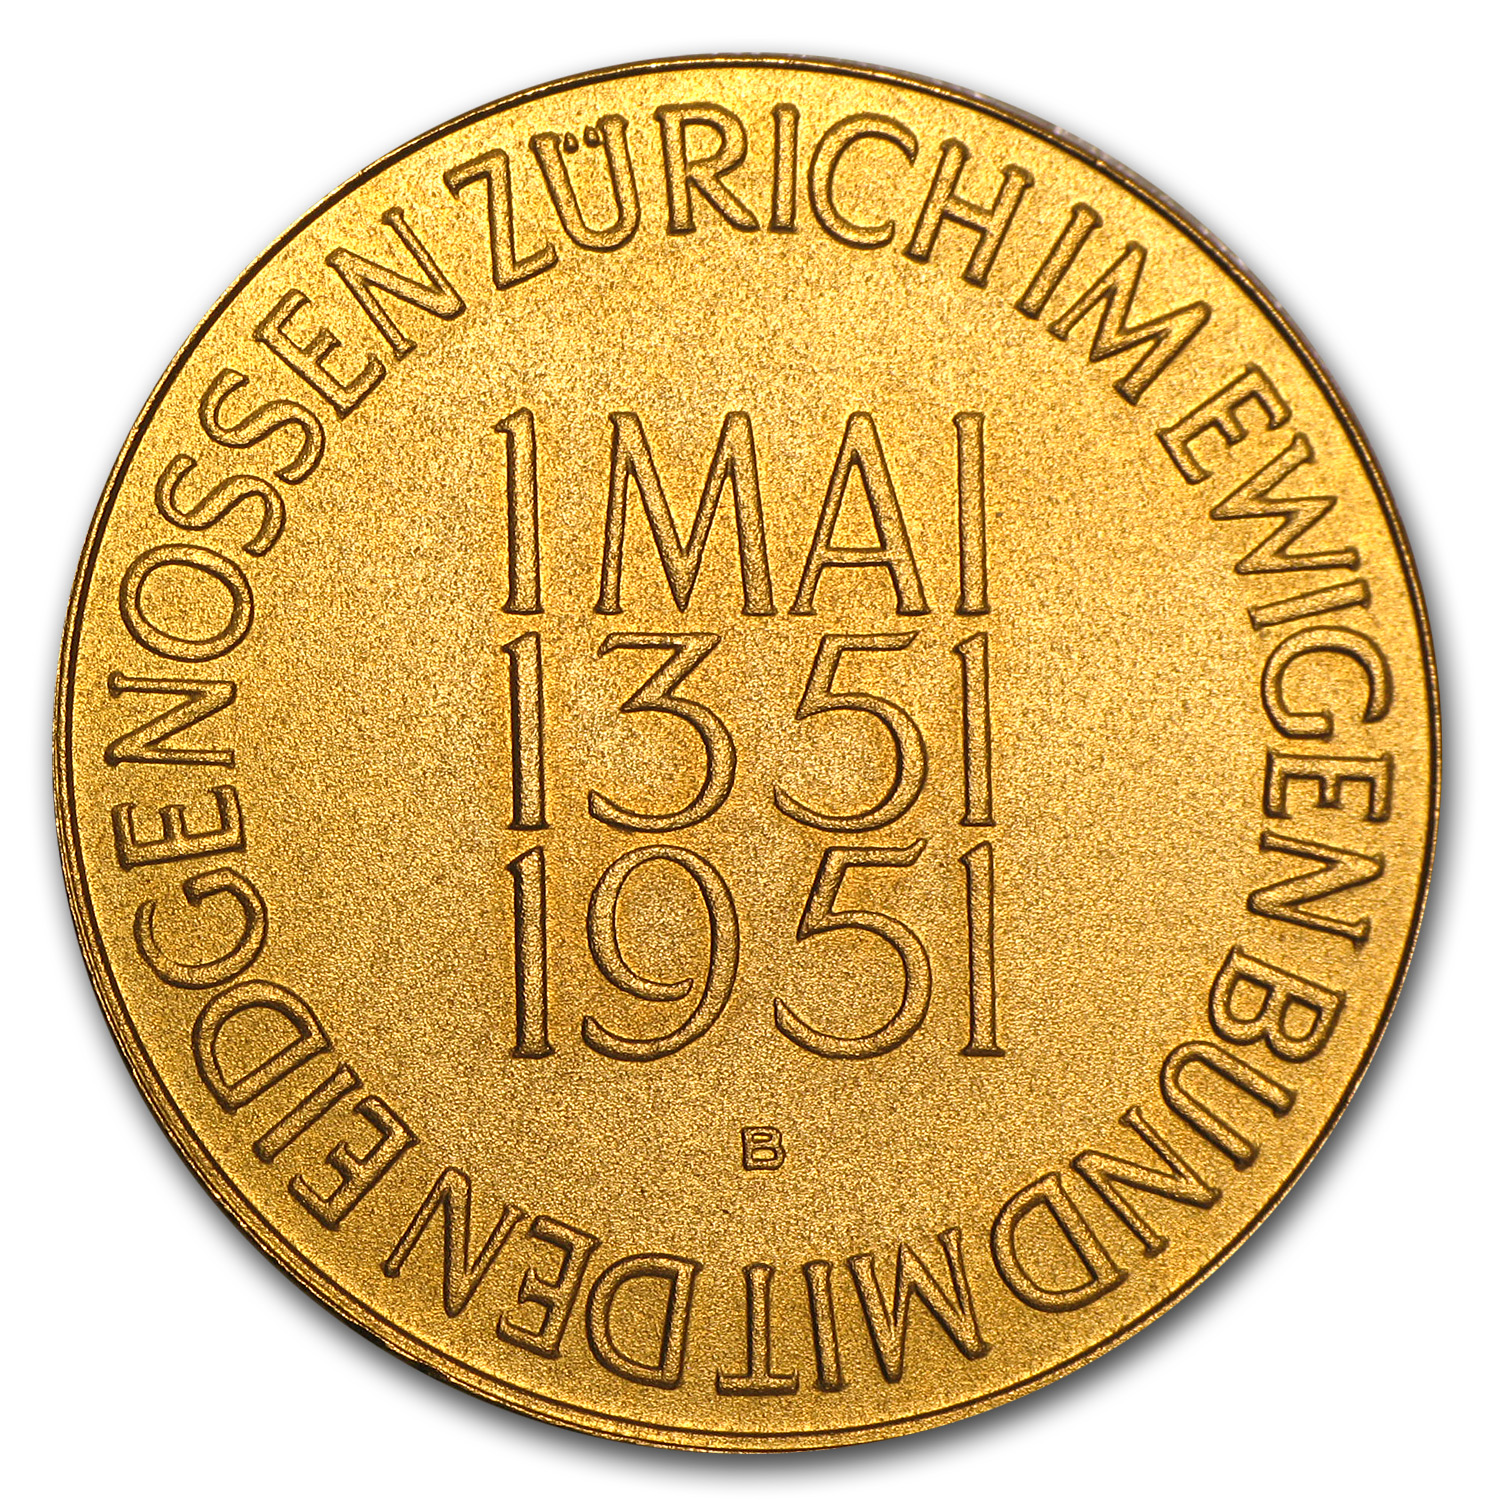 1951 Switzerland Gold Medal (Zurich)